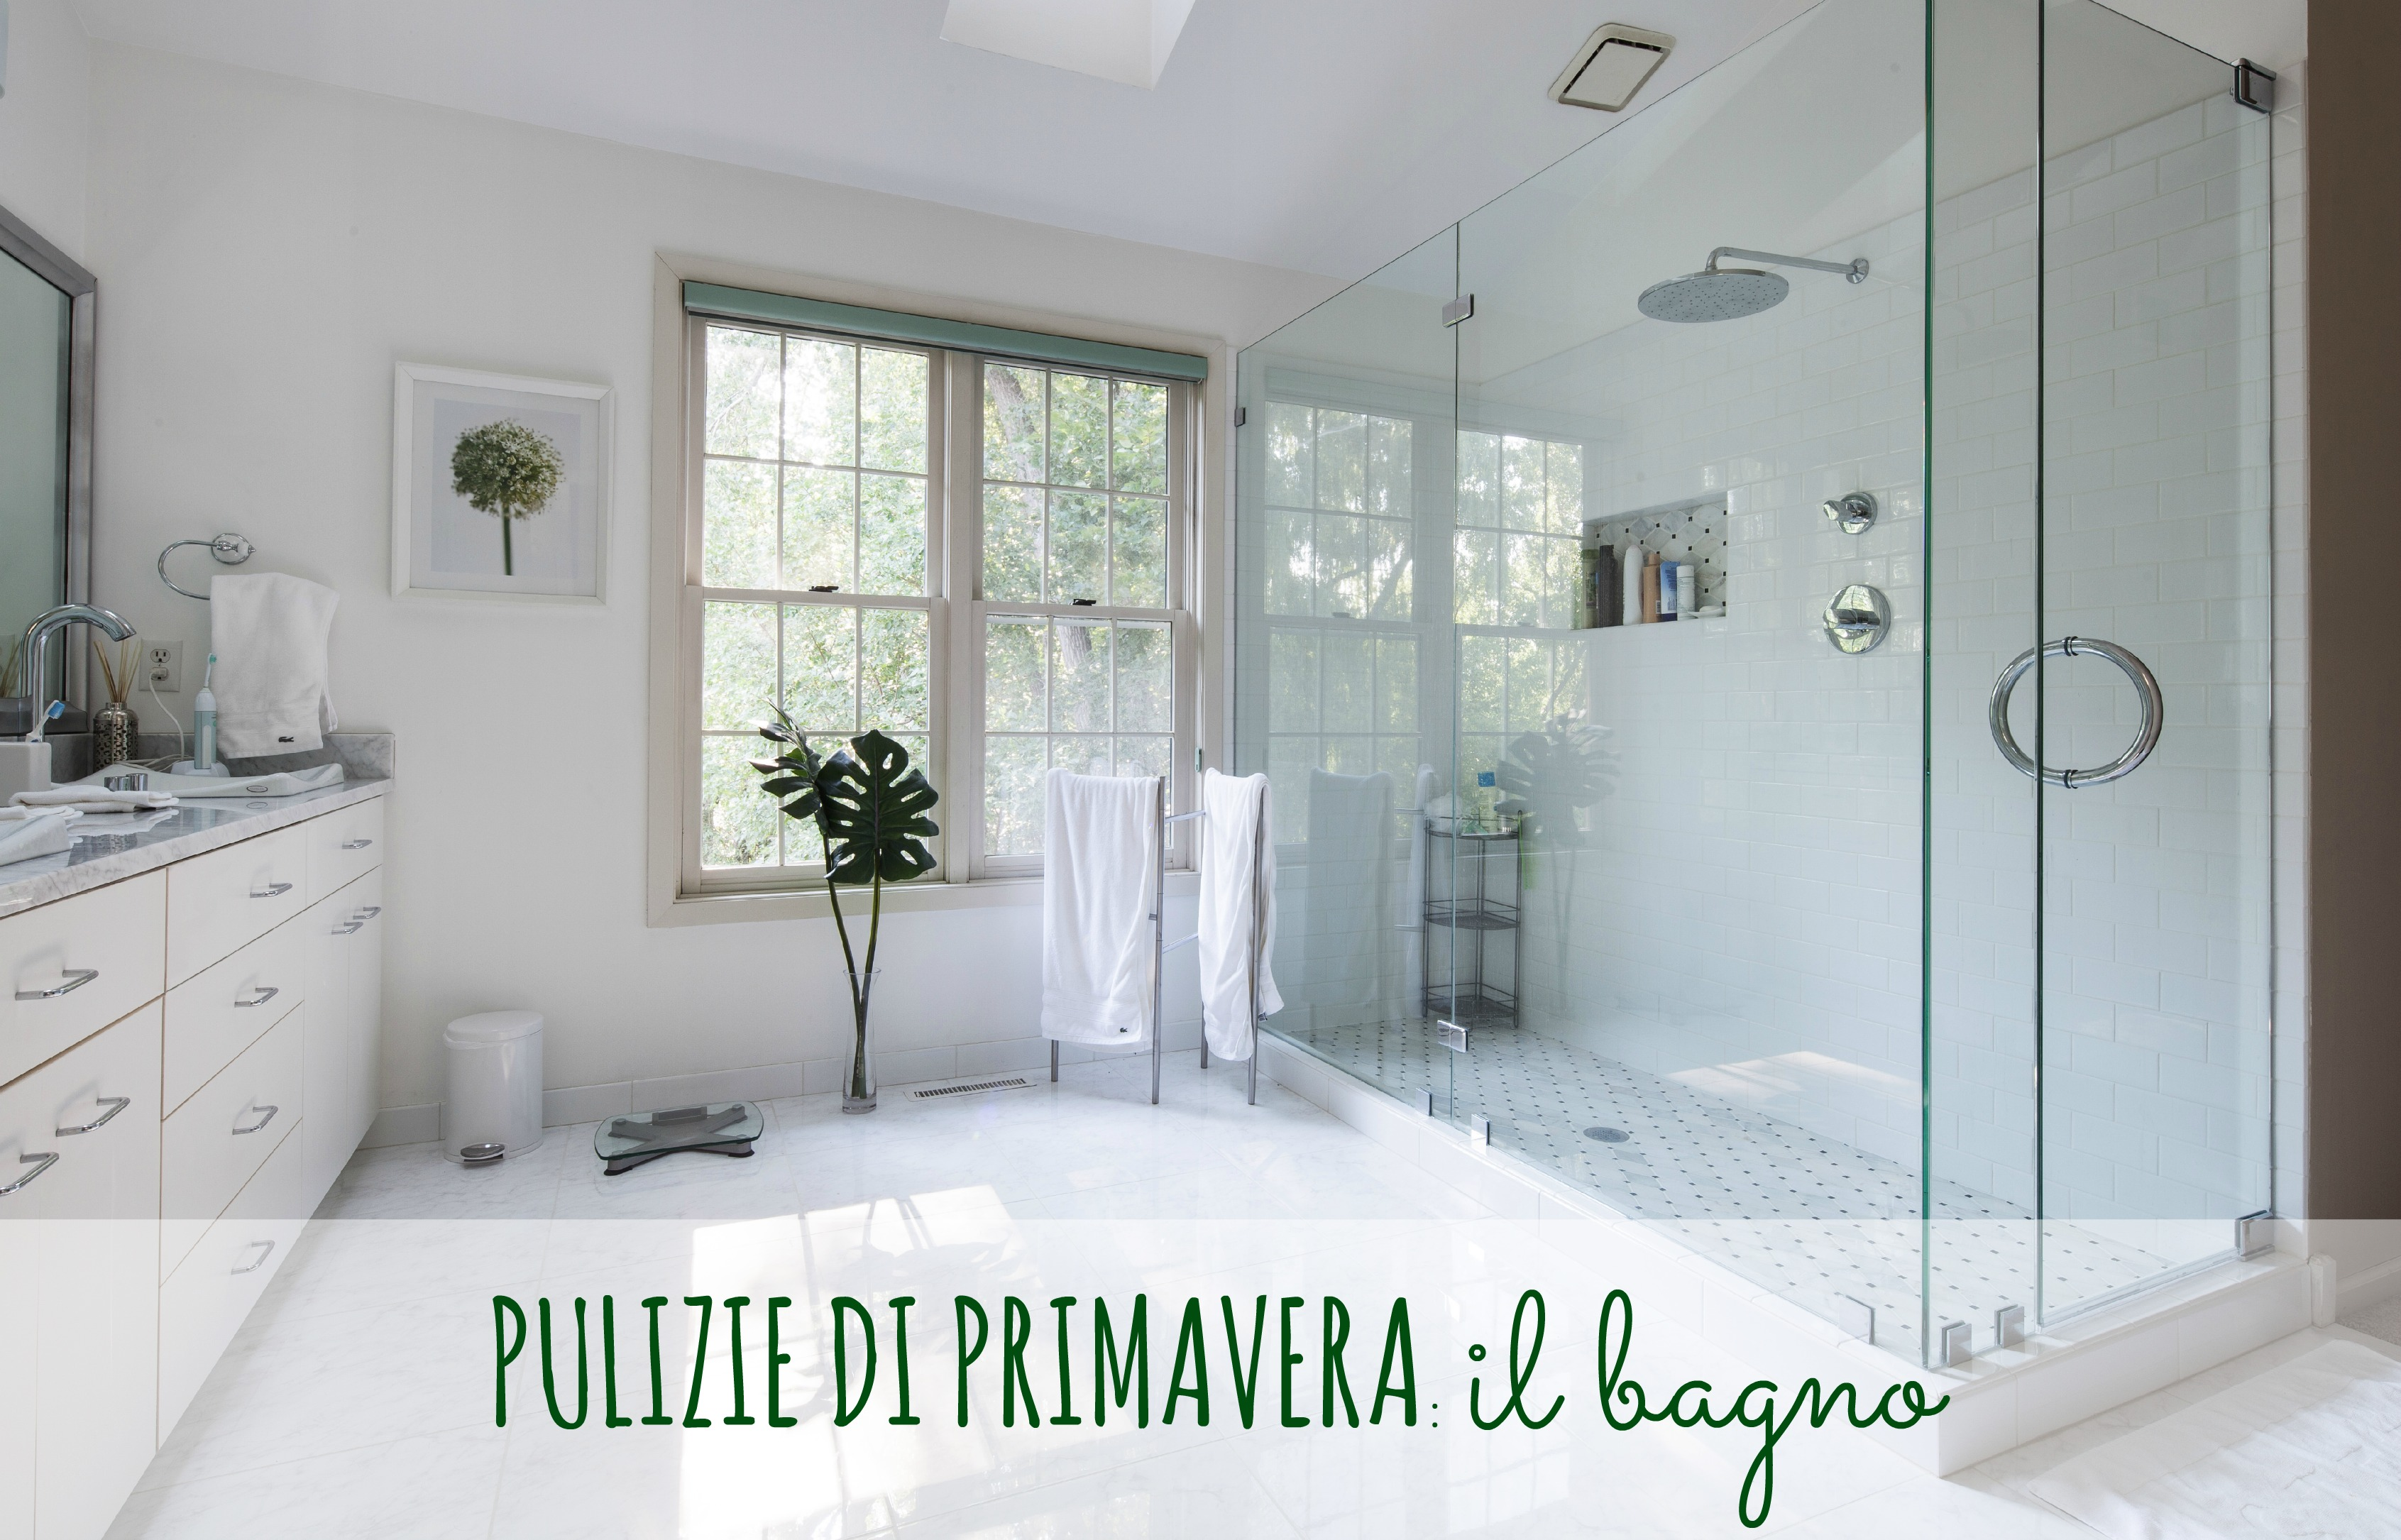 Pulizie di primavera il bagno babygreen for All white bathrooms ideas